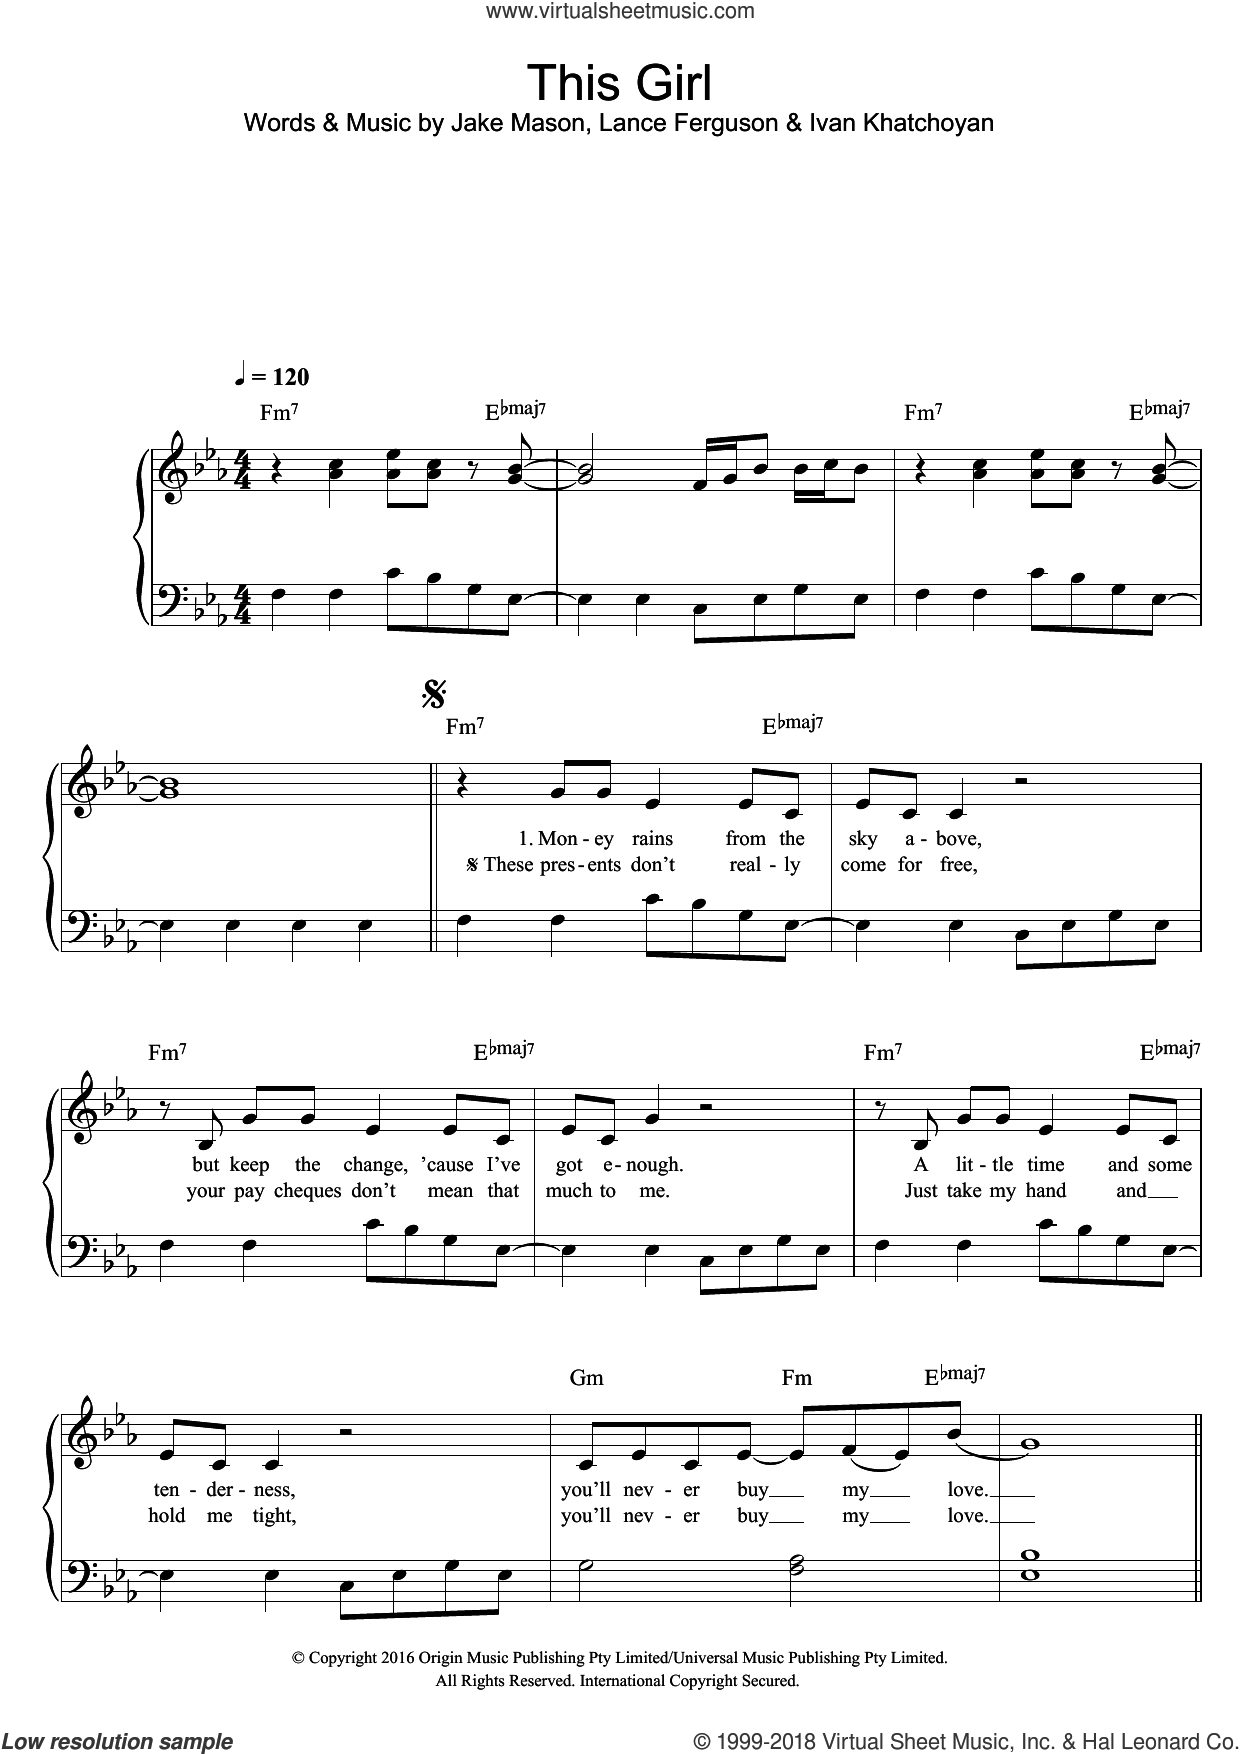 This Girl sheet music for piano solo by Cookin' on 3 Burners, Kungs, Ivan Khatchoyan, Jake Mason and Lance Ferguson, easy skill level